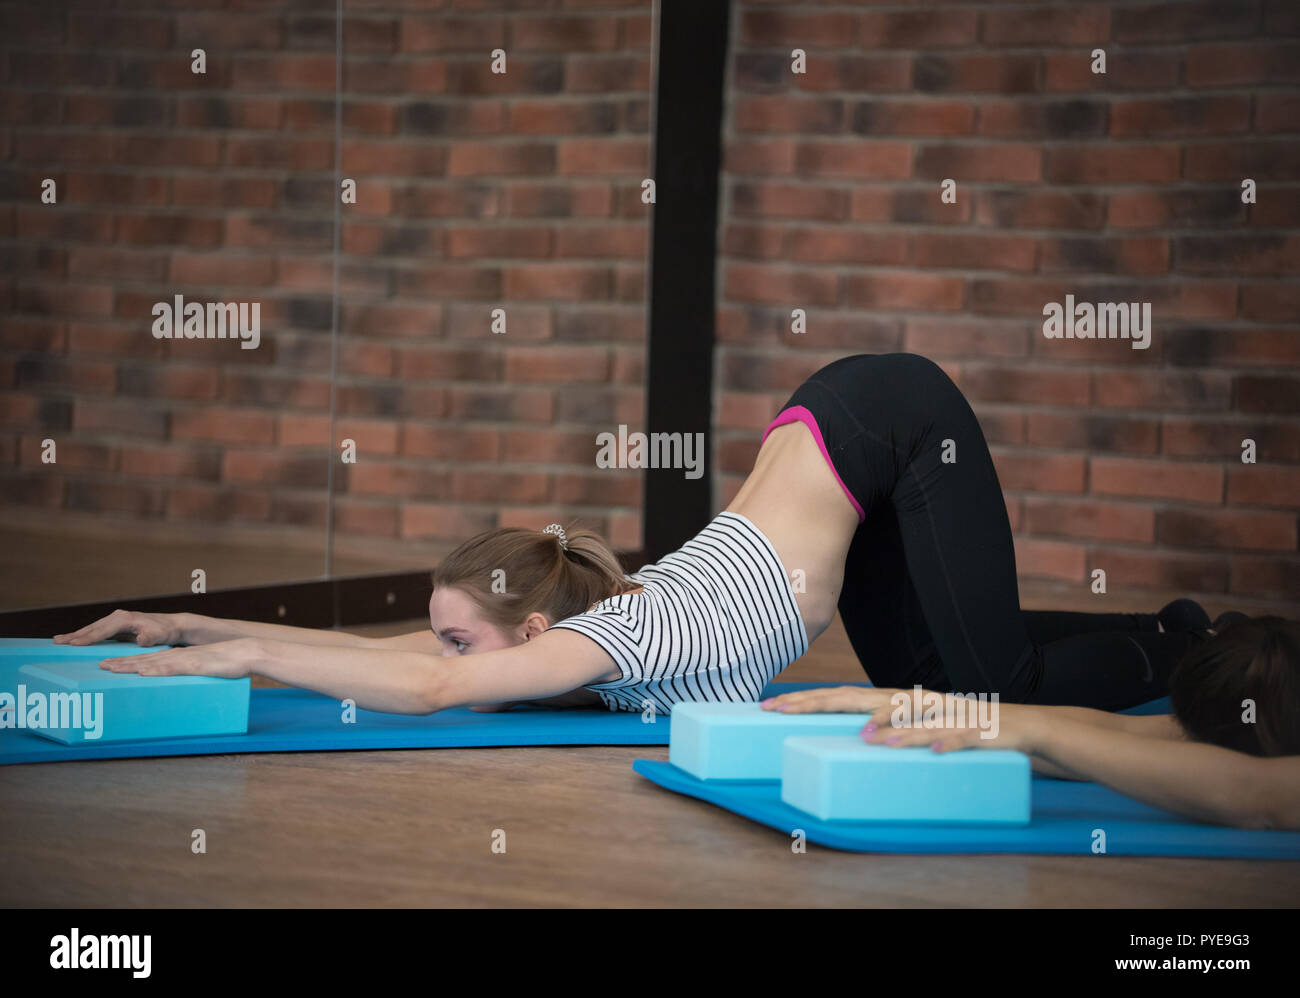 Young pretty woman in leggings performing a low backbend showing flexibility - Stock Image